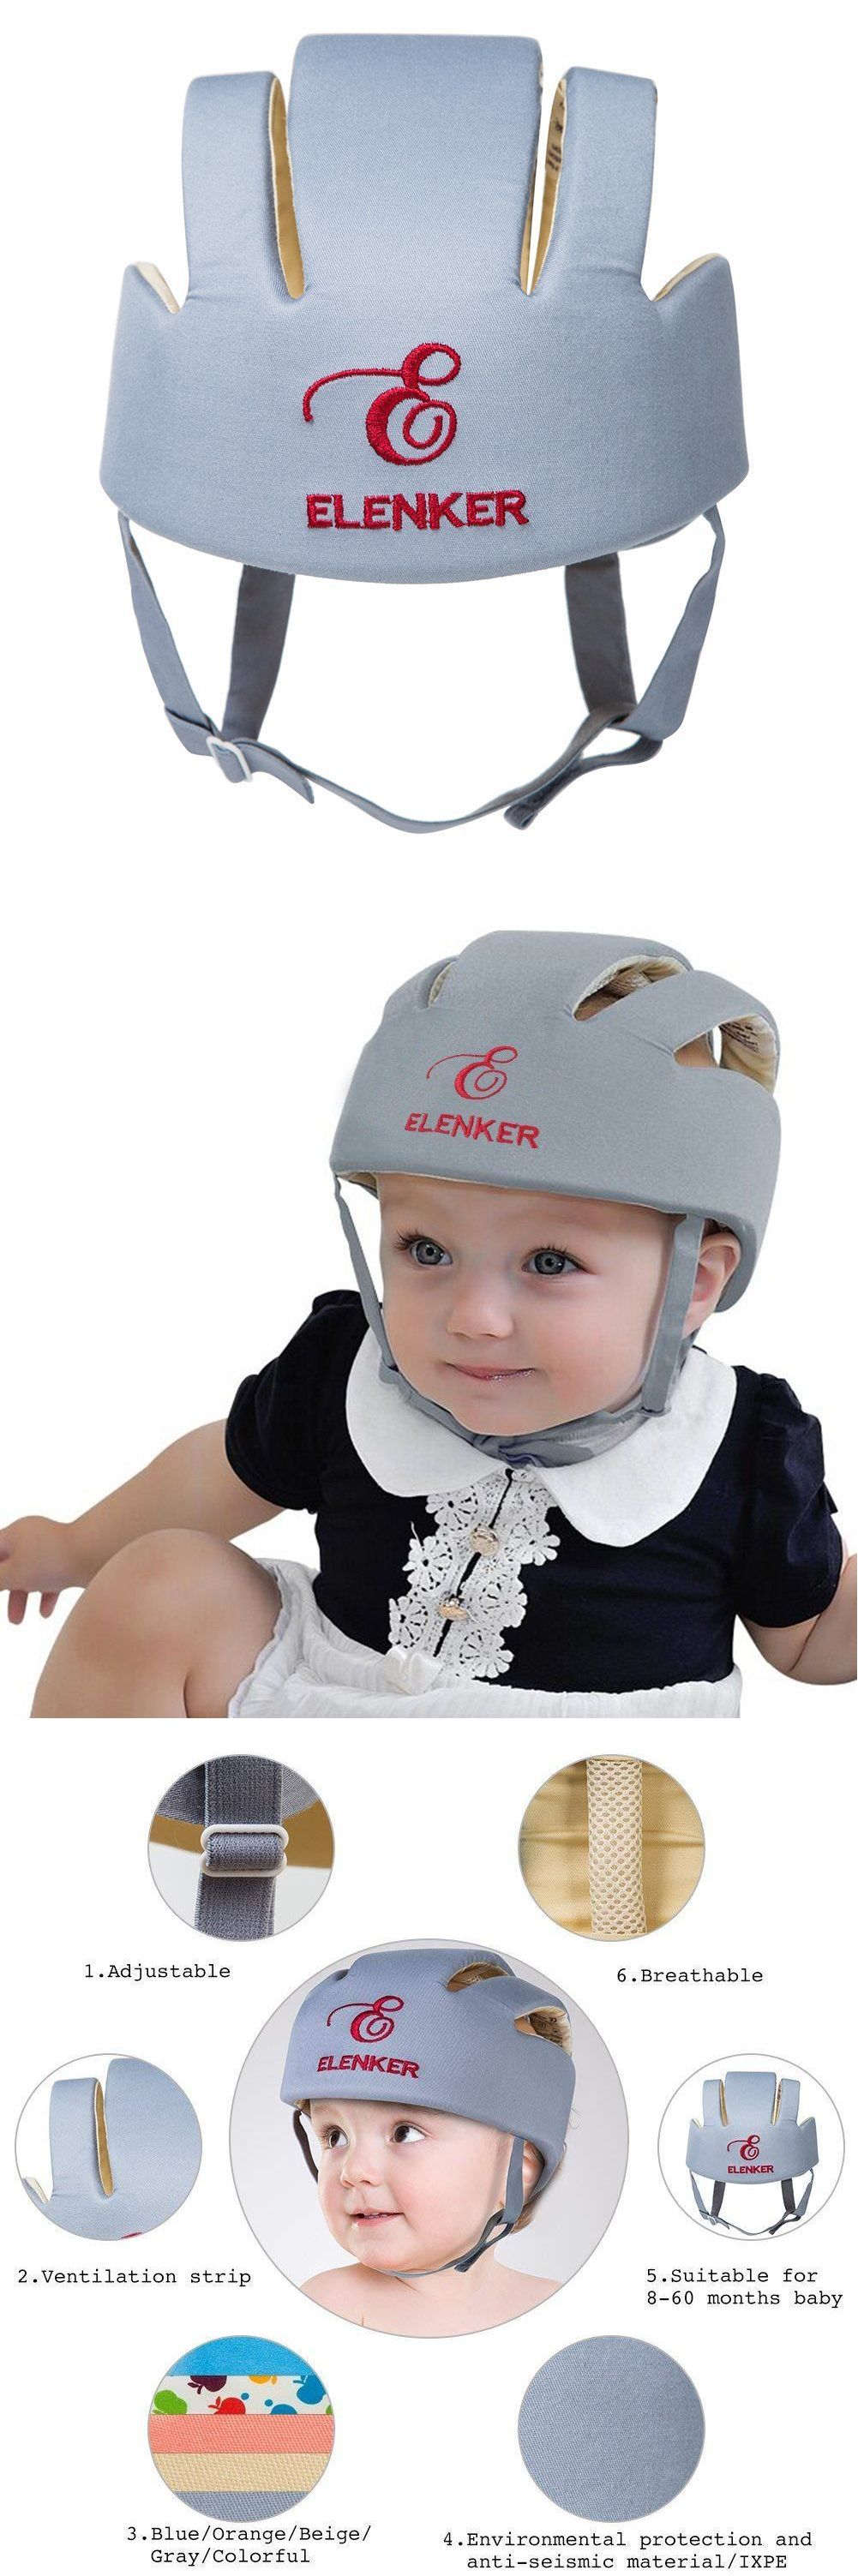 bf3393e287e Other Baby Safety and Health 20436  Baby Adjustable Safety Helmet Children  Headguard Infant Protective Cap Grey -  BUY IT NOW ONLY   14.99 on  eBay   other ...